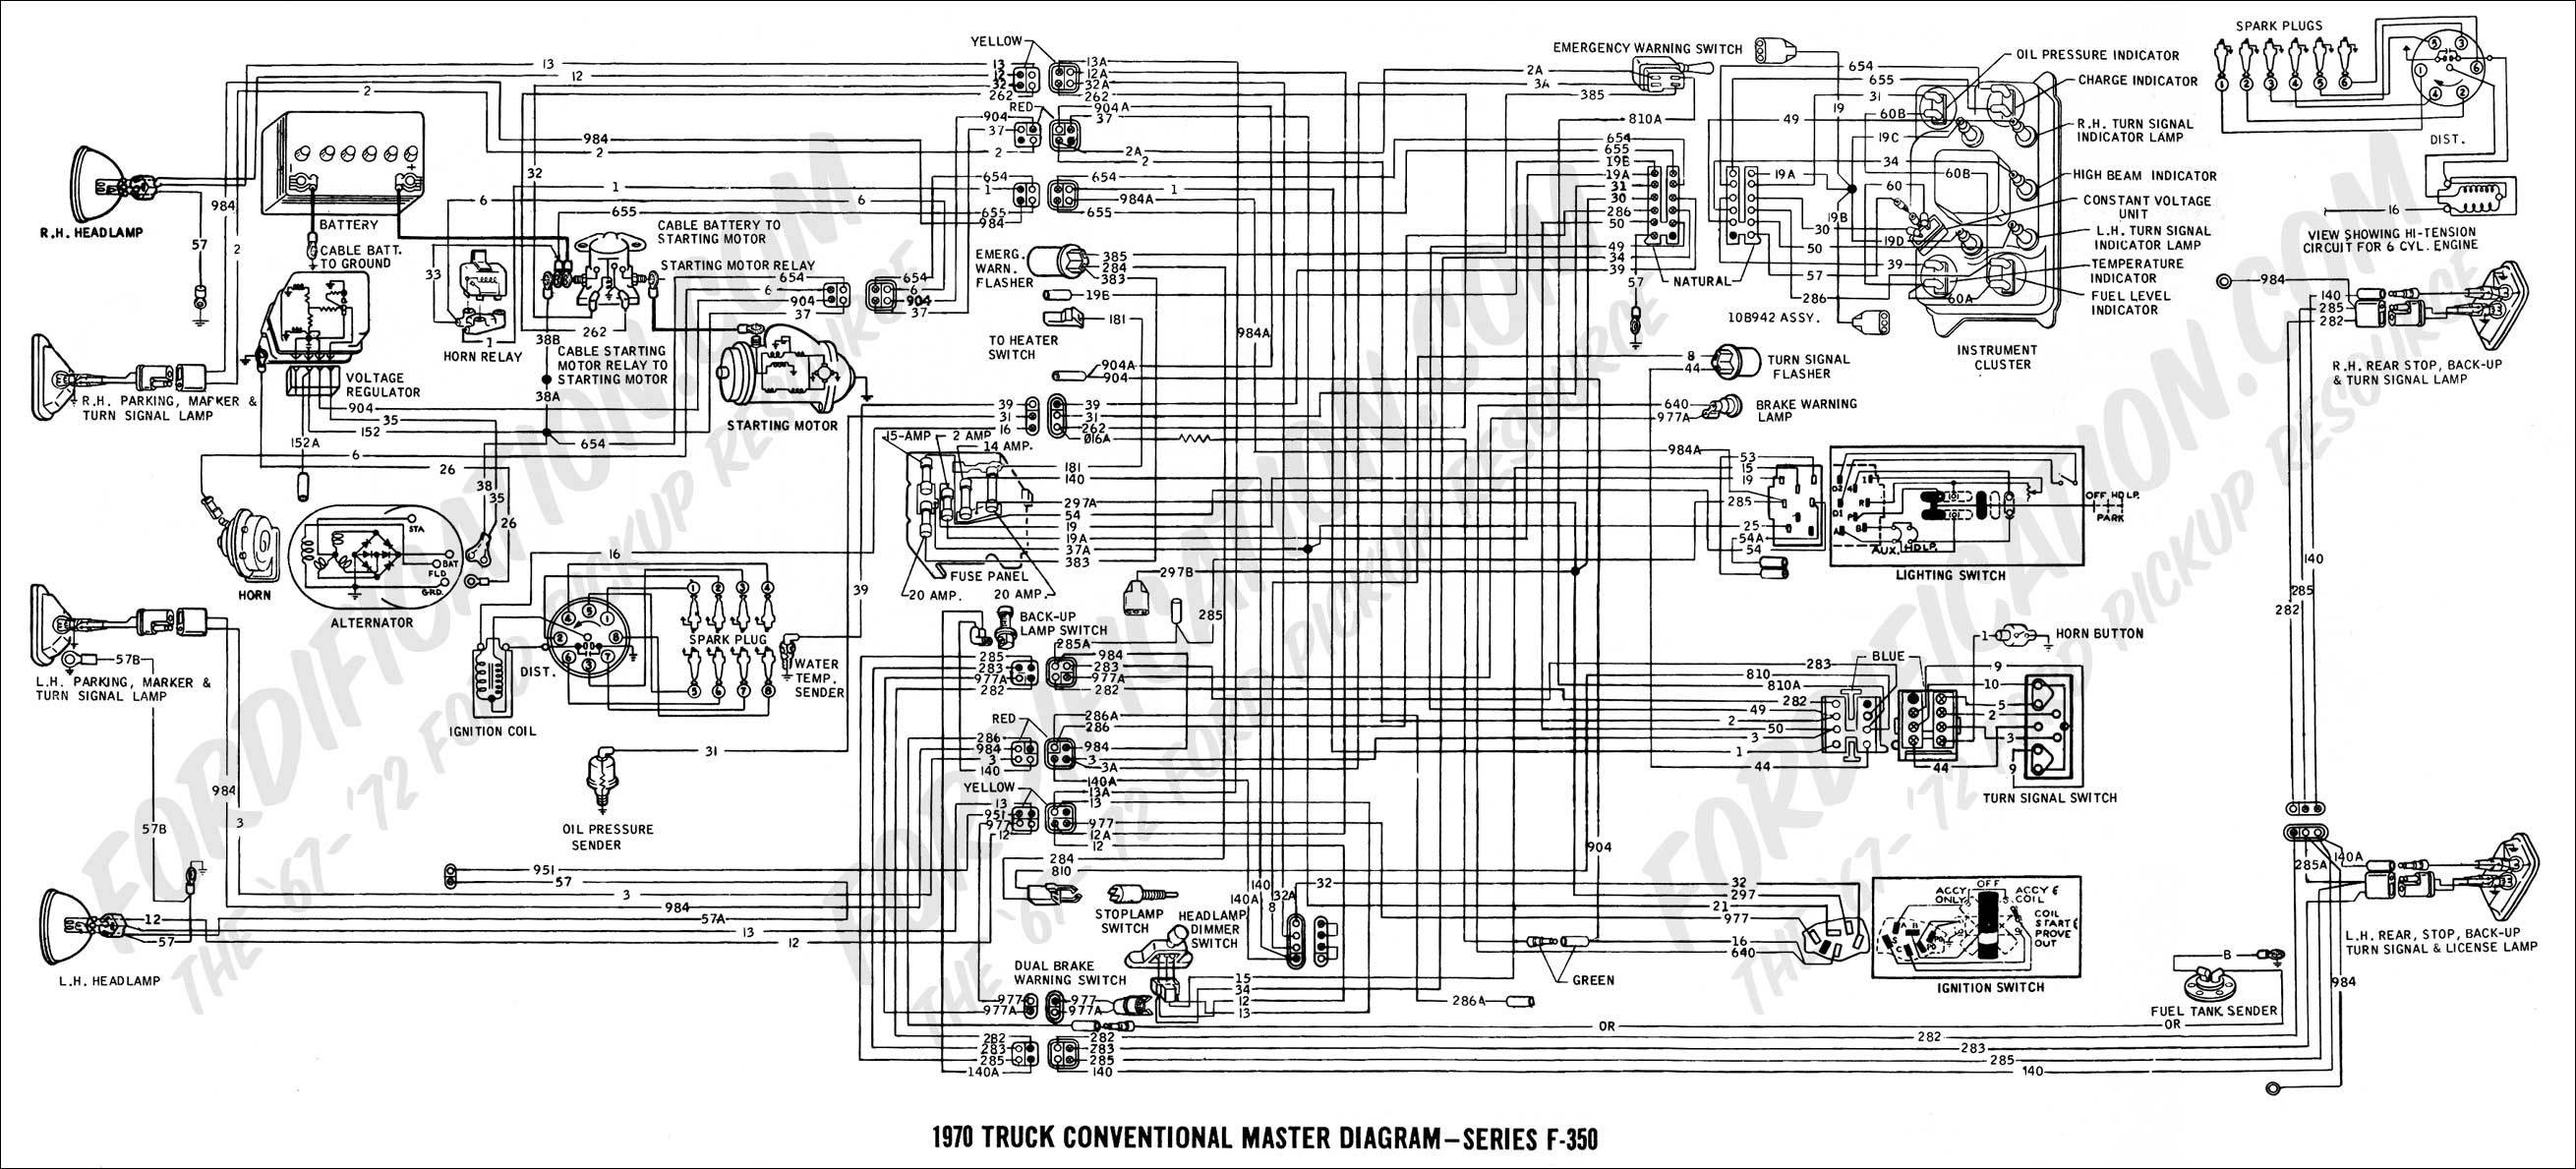 5r55s Wiring Diagram | Wiring Liry on